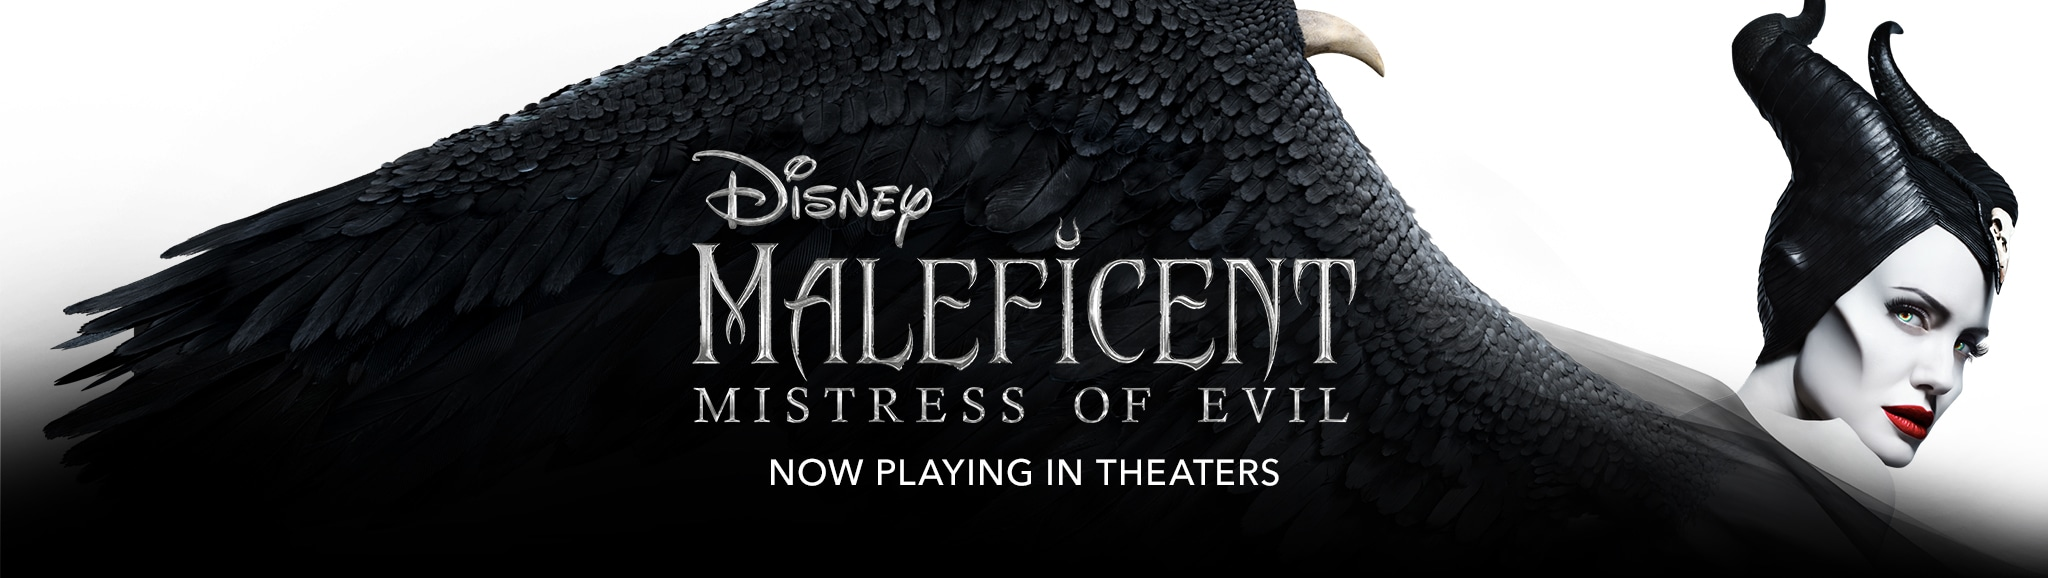 Disney Maleficent: Mistress of Evil. Now Playing in Theaters.